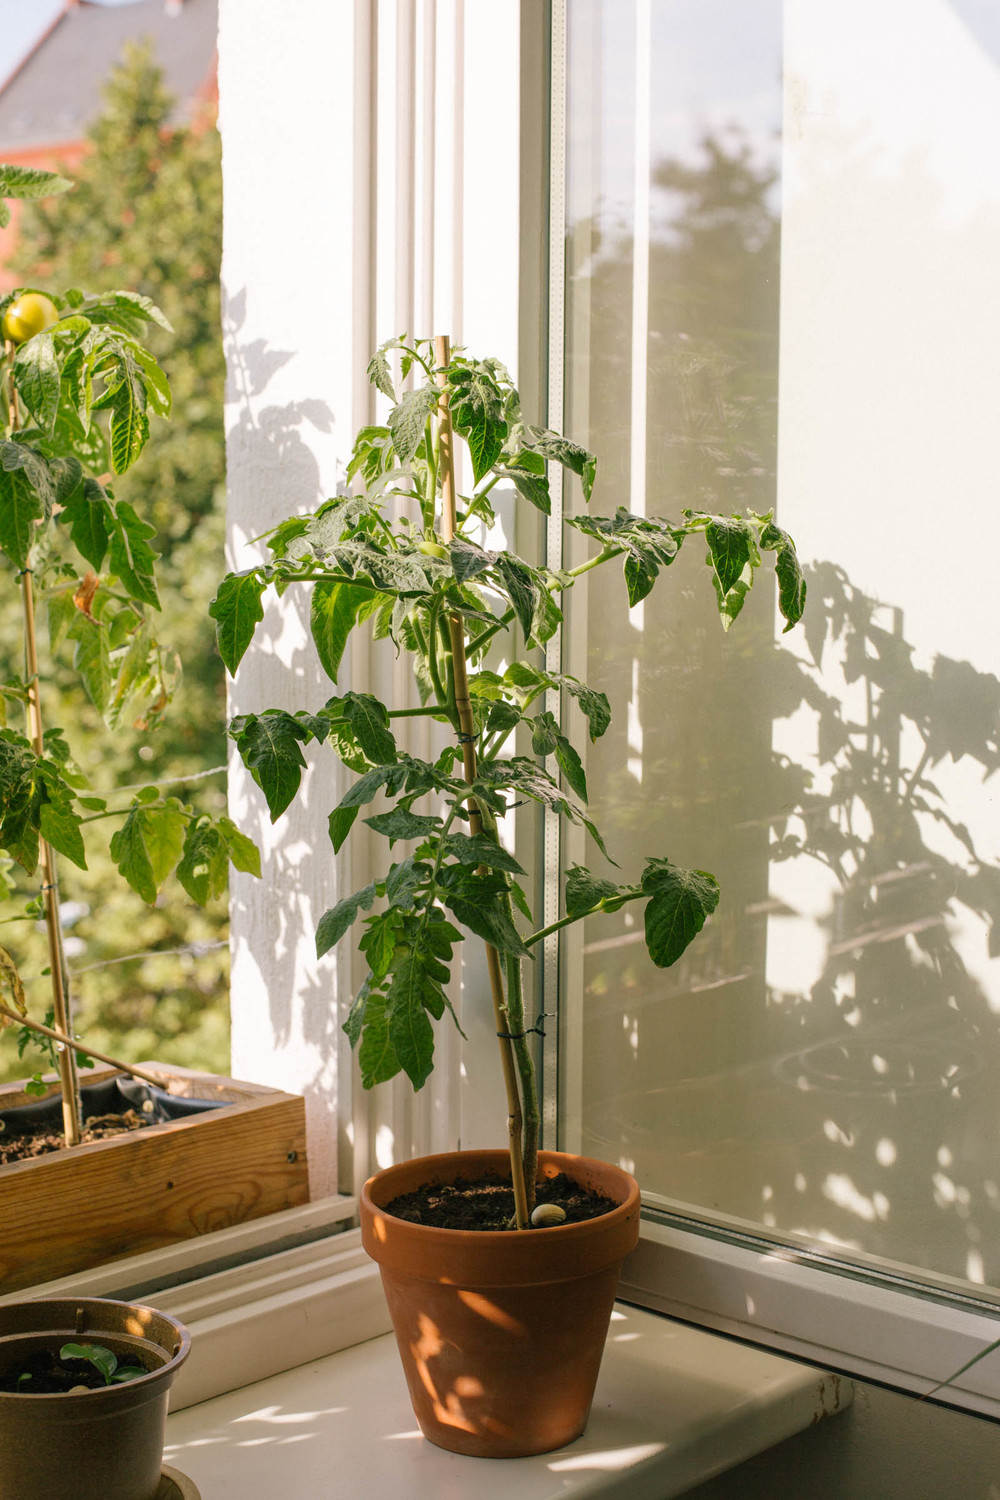 August 2015: The tomatoes on the inside windowsill are taking a little longer to grow.